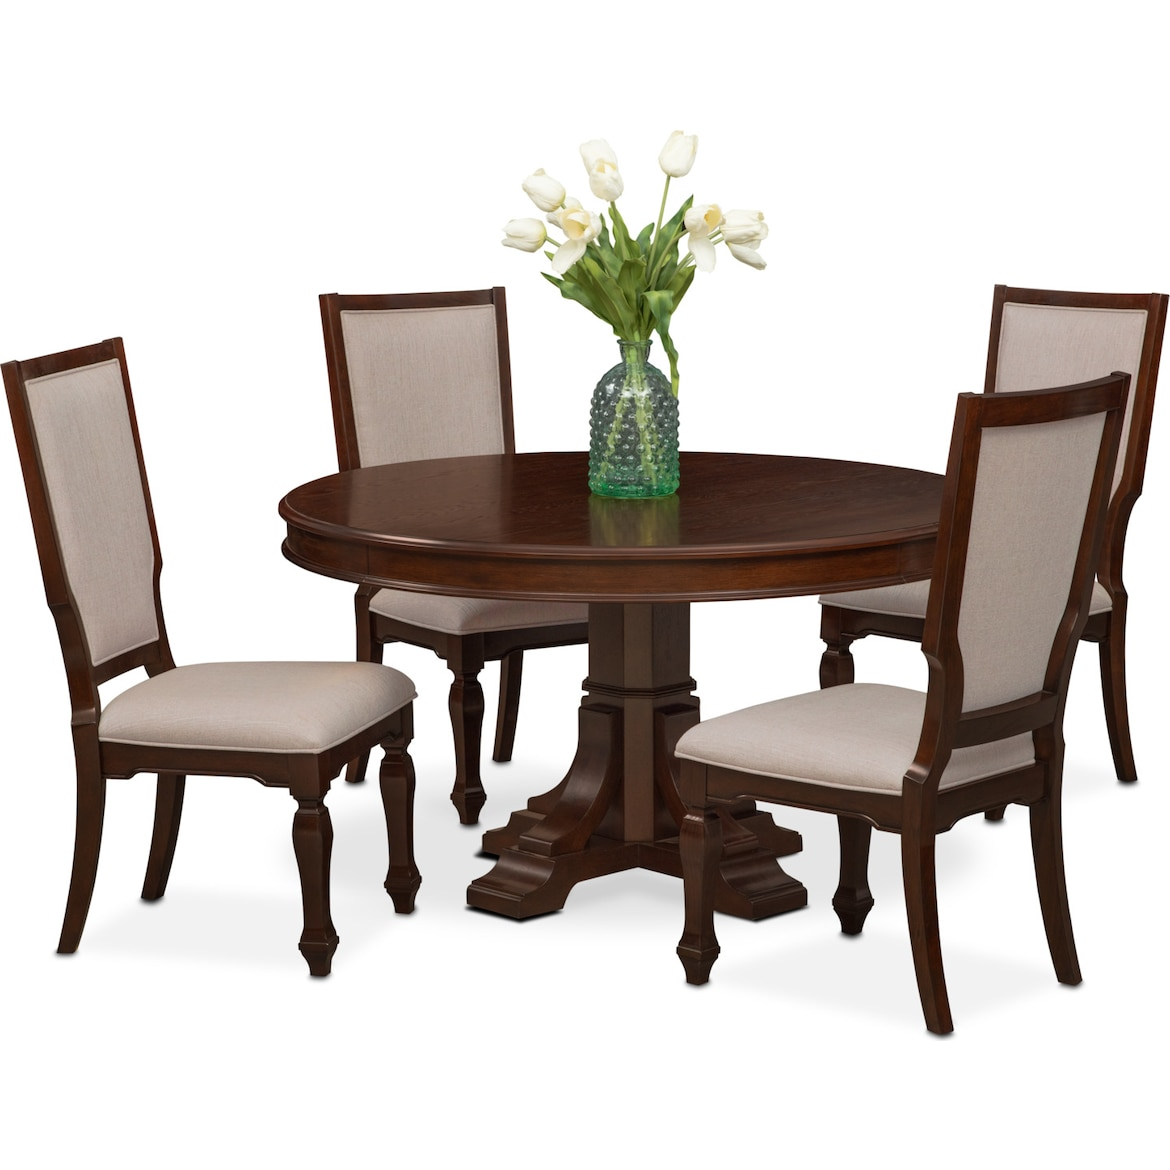 Round Dining Tables For 4: Vienna Round Dining Table And 4 Upholstered Side Chairs